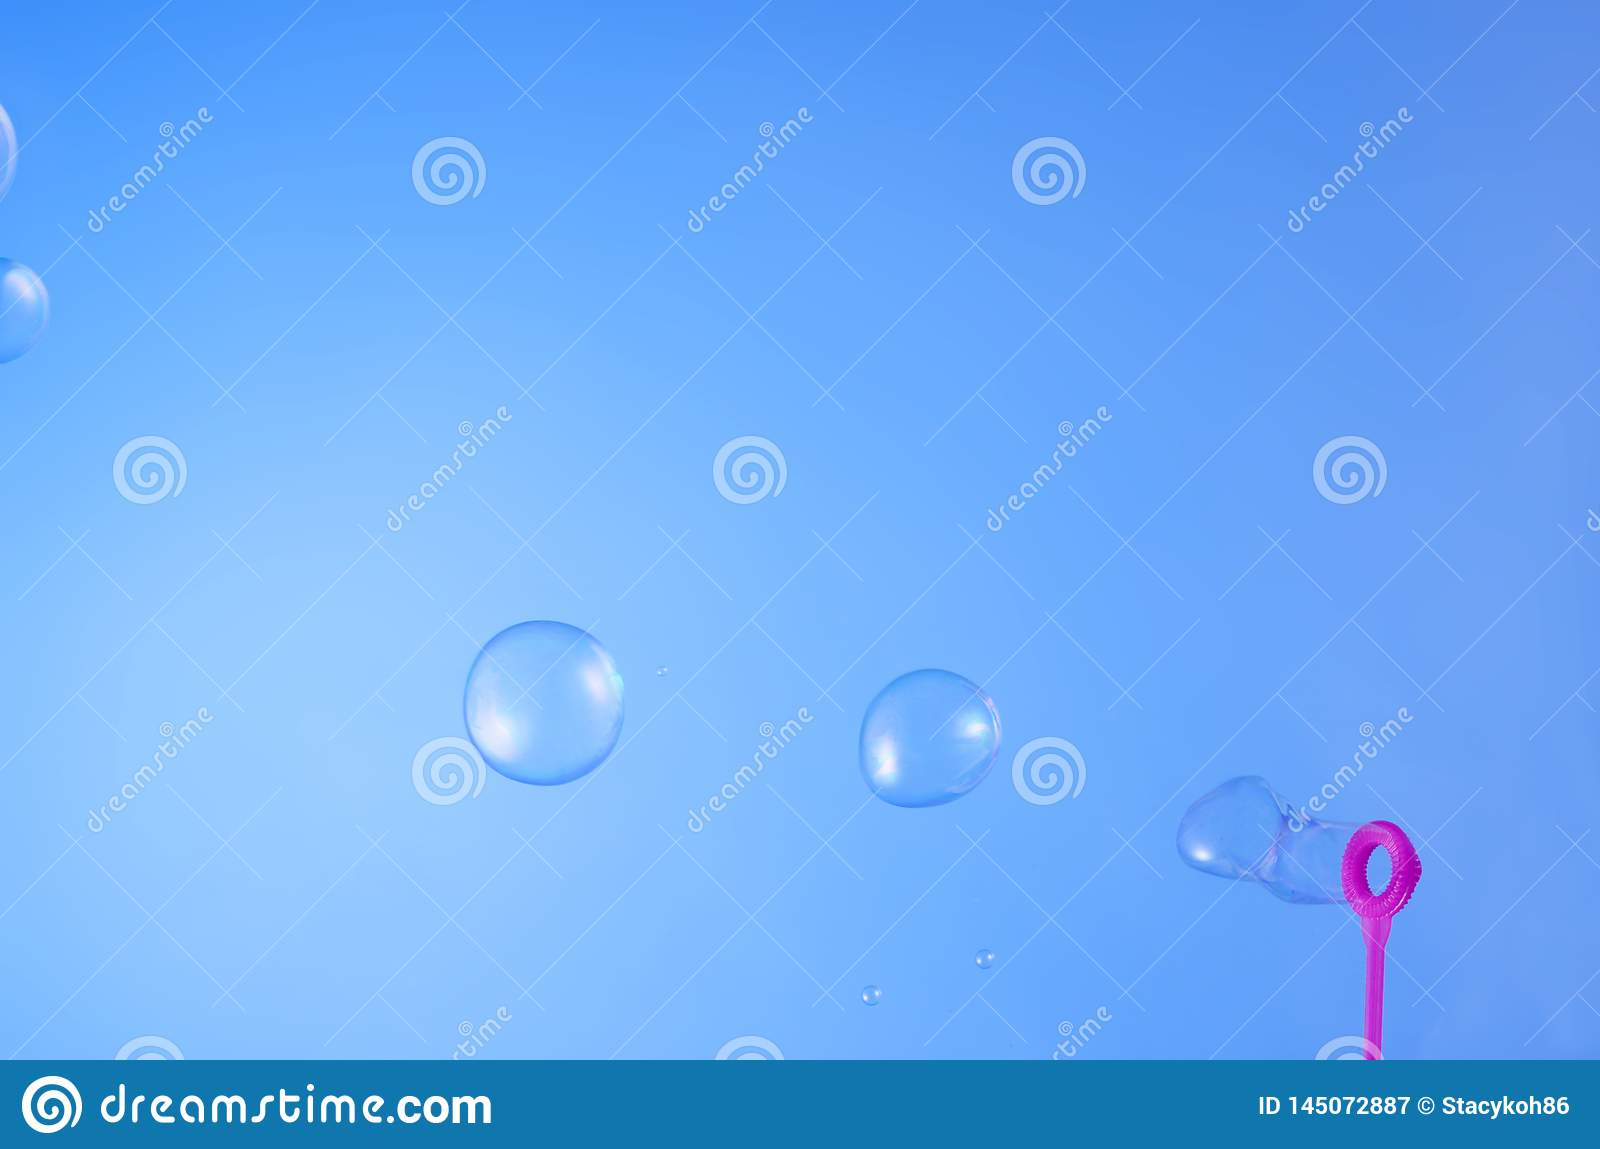 Floating bubble soap in the blue sky